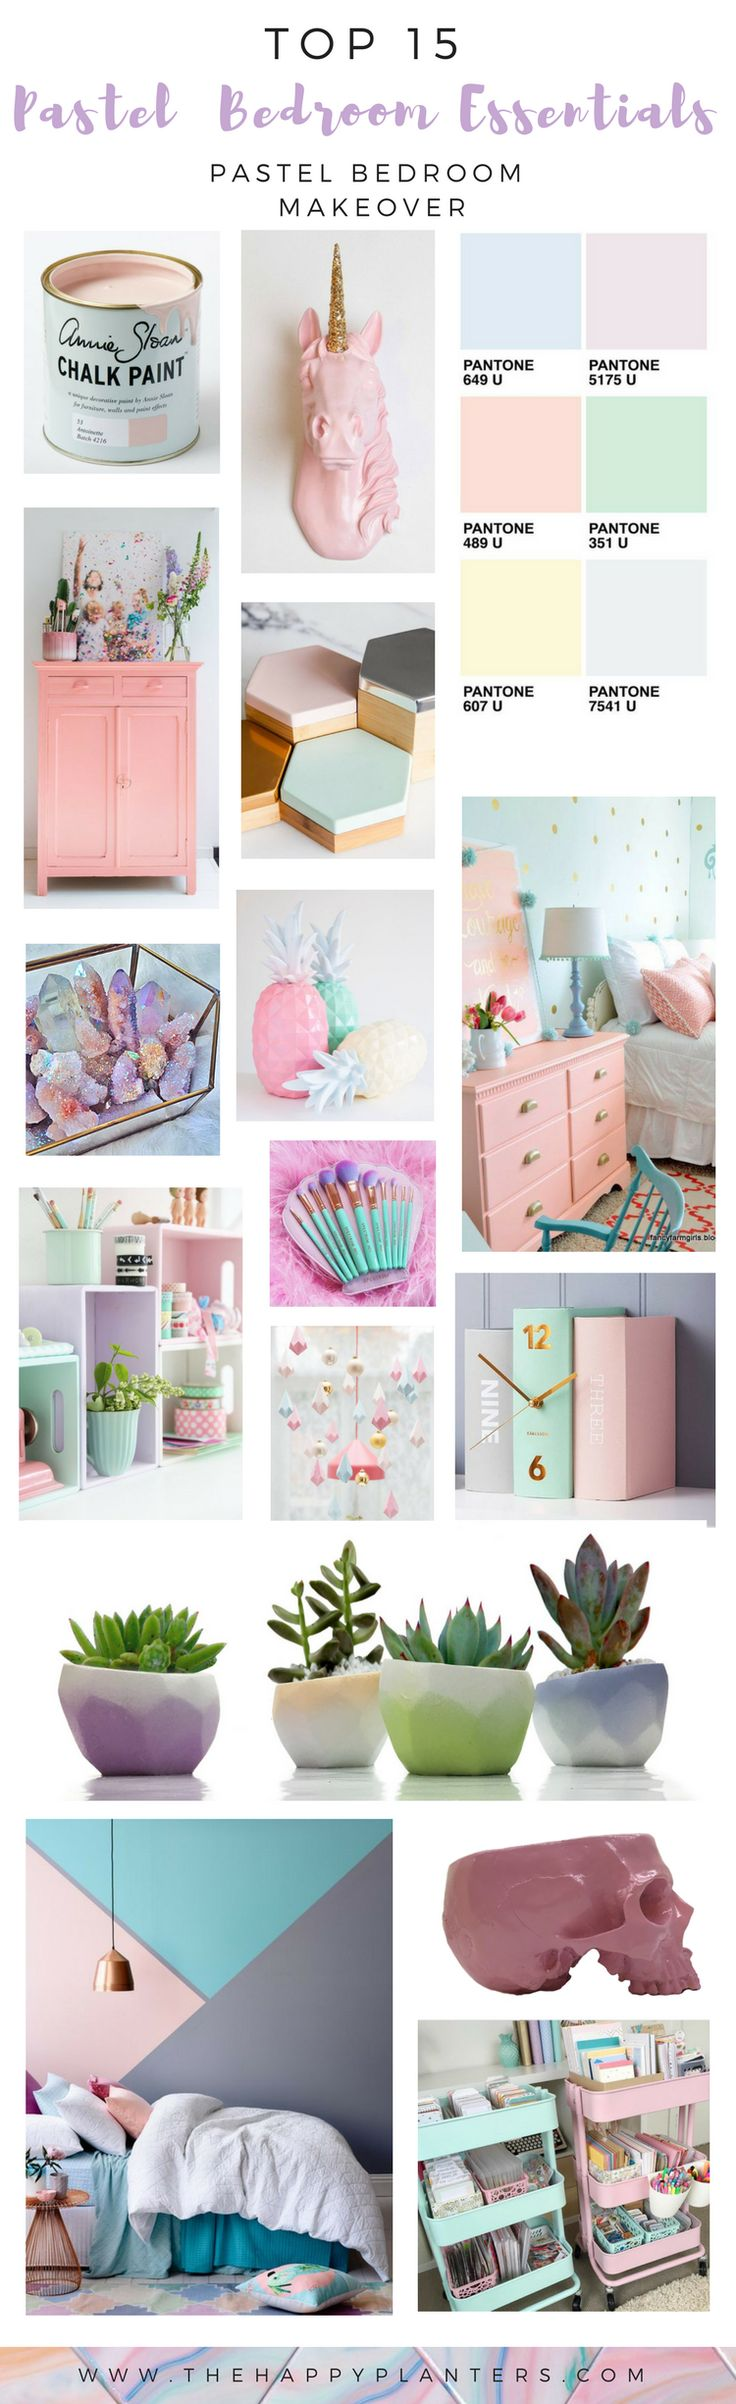 "Pastel Bedroom Essentials is a Pastel Aesthetic Guide w/ Source List & Inspiration Board for a Pastel Bedroom Make over >>See original post: _______        ______  https://www.thehappyplanters.com/single-post/2017/07/30/PASTEL-BEDROOM-MAKEOVER                                                         ___ > > >Pastel Home Decor  easy steps to Create the Pastel Unircorn Look you are dreaming about ""Pastel Minimalism""< < <___"